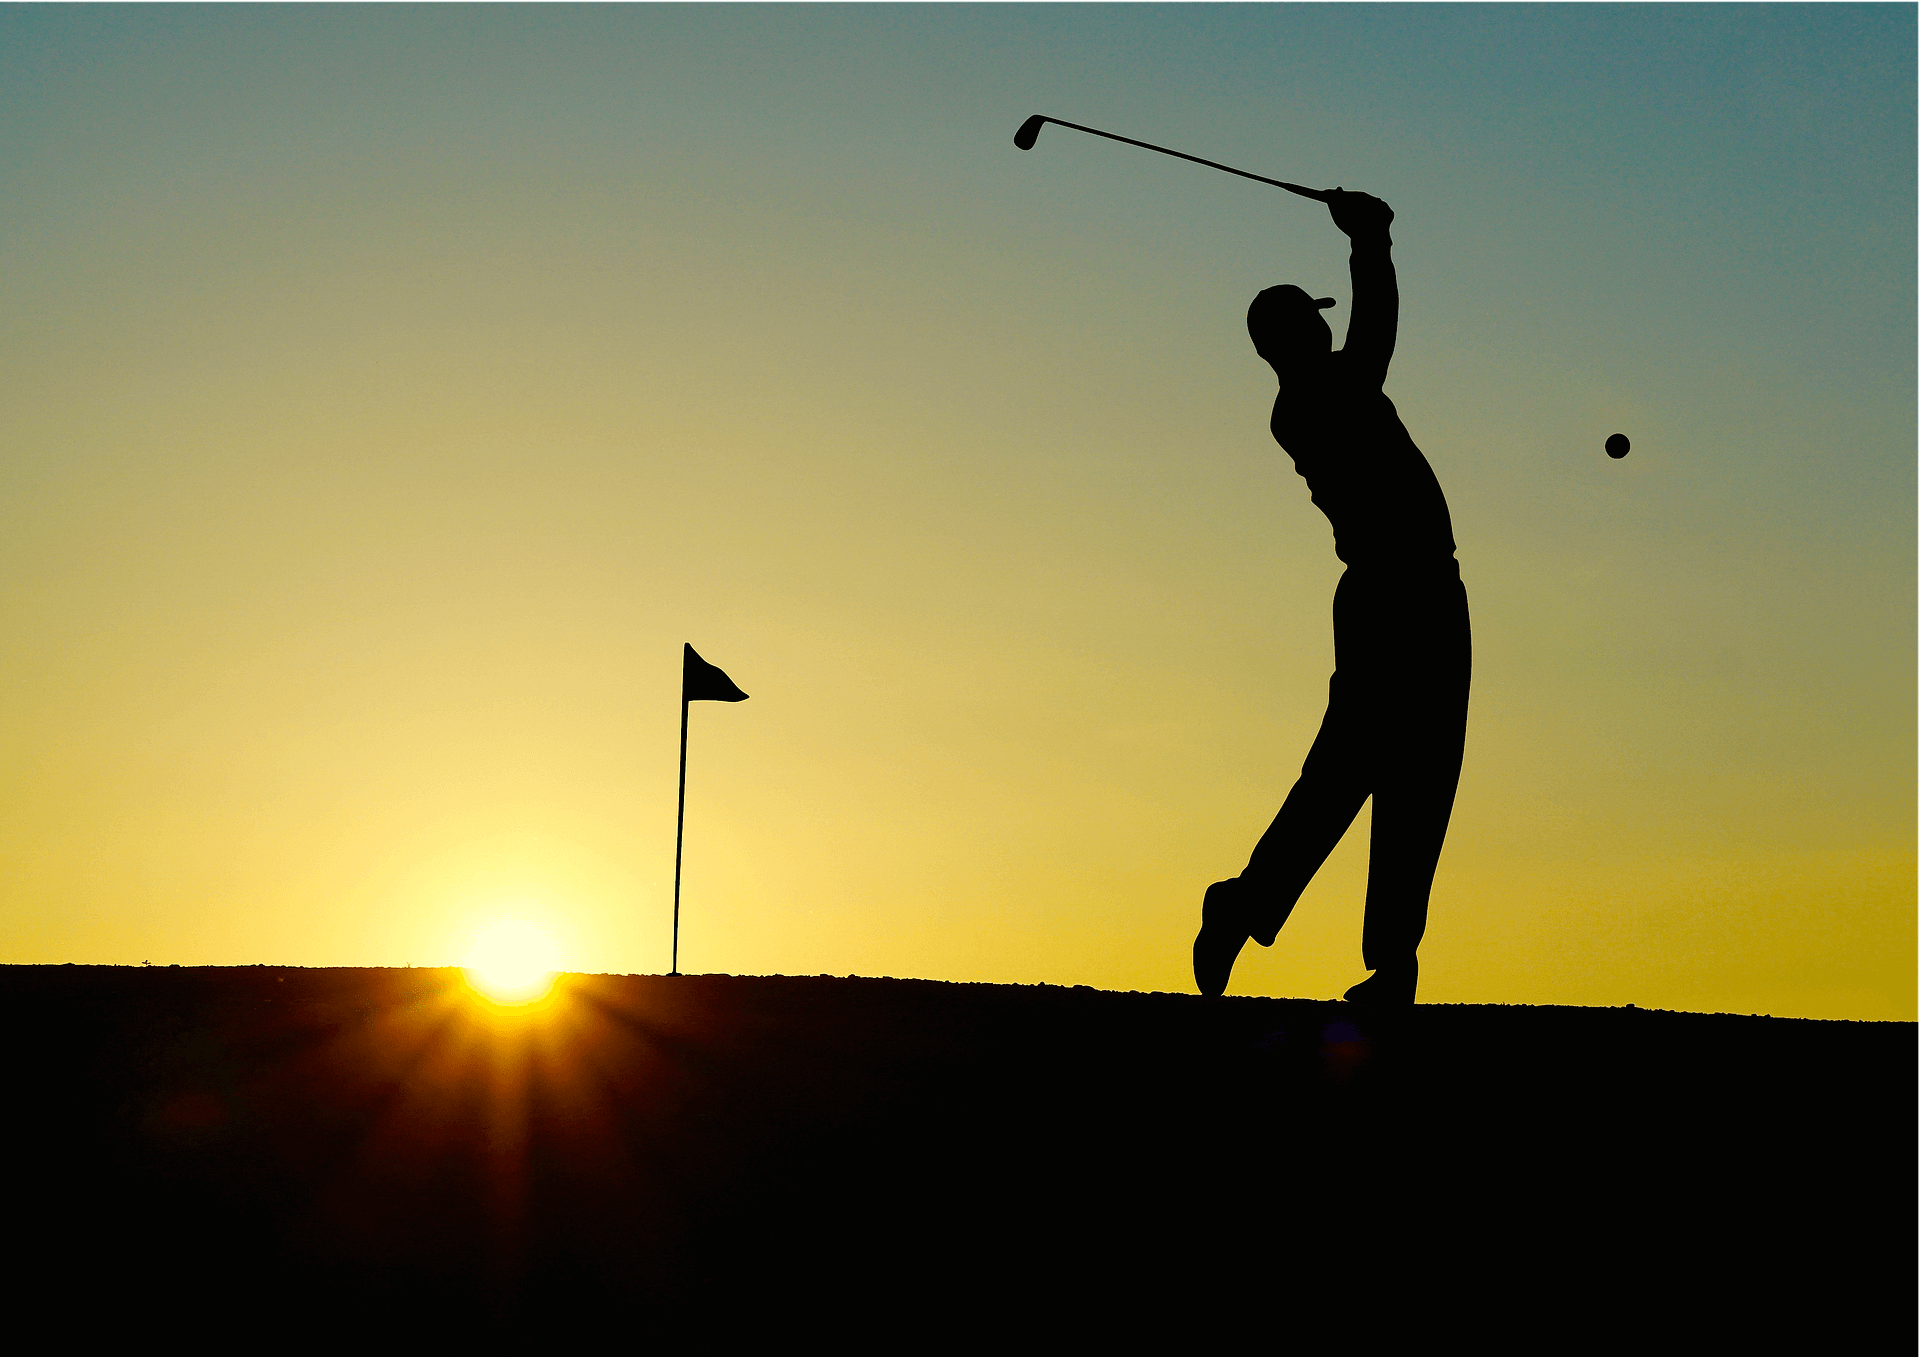 Sunstone Registered Massage For Your Golf Game RMT Vaughan Ontario Canada